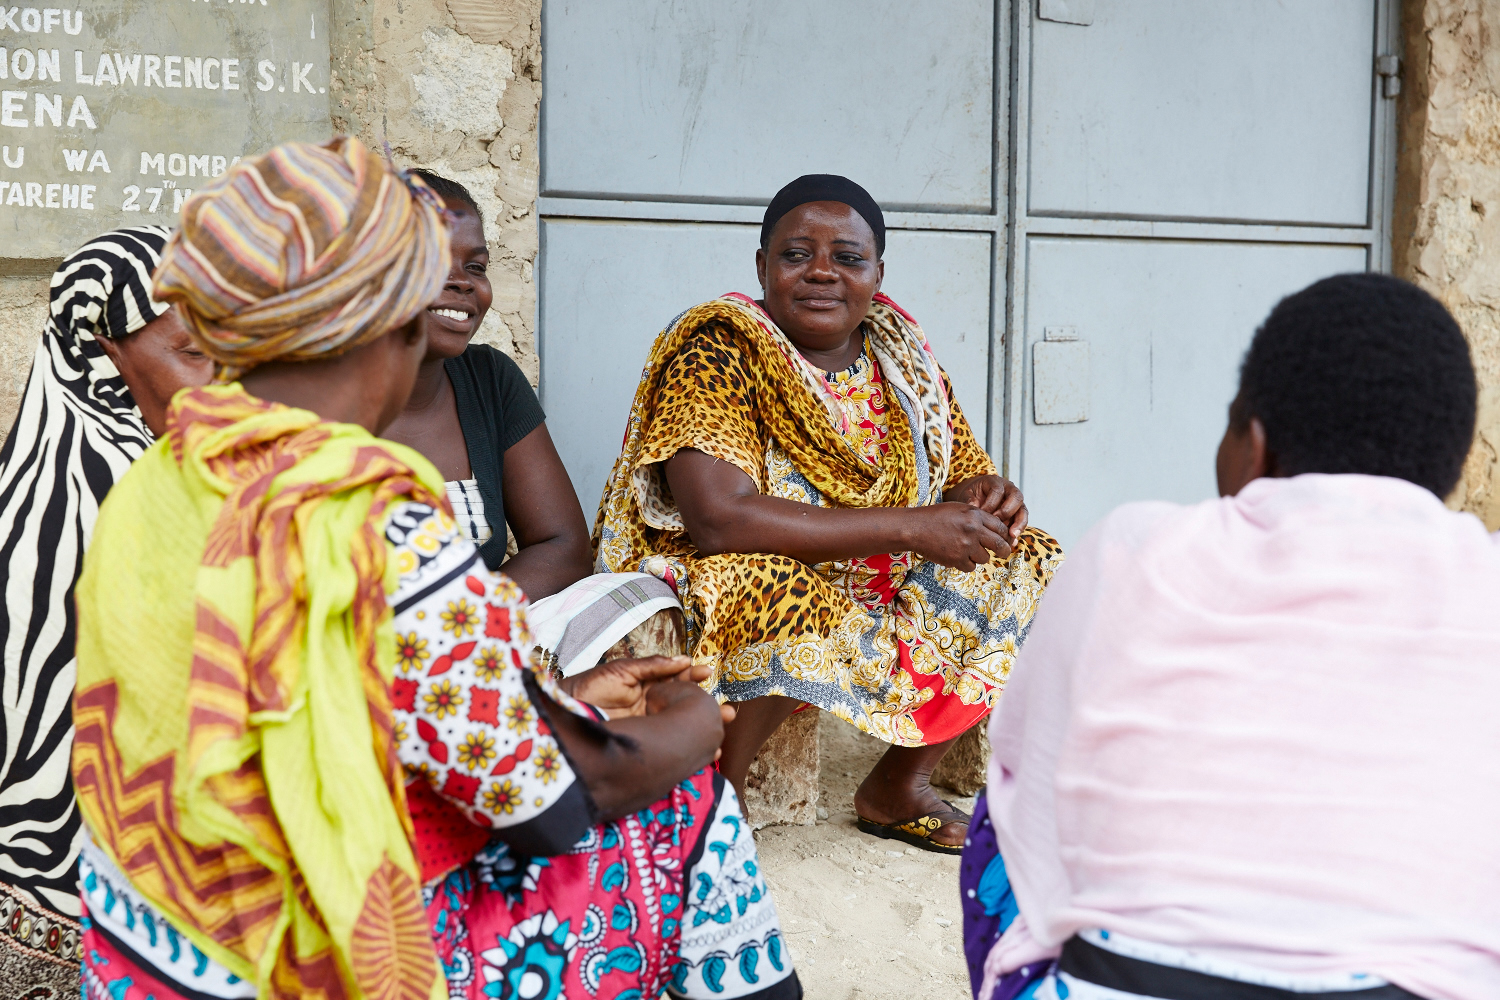 Fatuma Faraji Leli, chairlady of the Mwakirunge Sauti ya Wanawake (The Voice of Women) meets with other members to discuss gender based violence issues, and cases they are supporting. Mwakirunge, Mombasa, June 2016